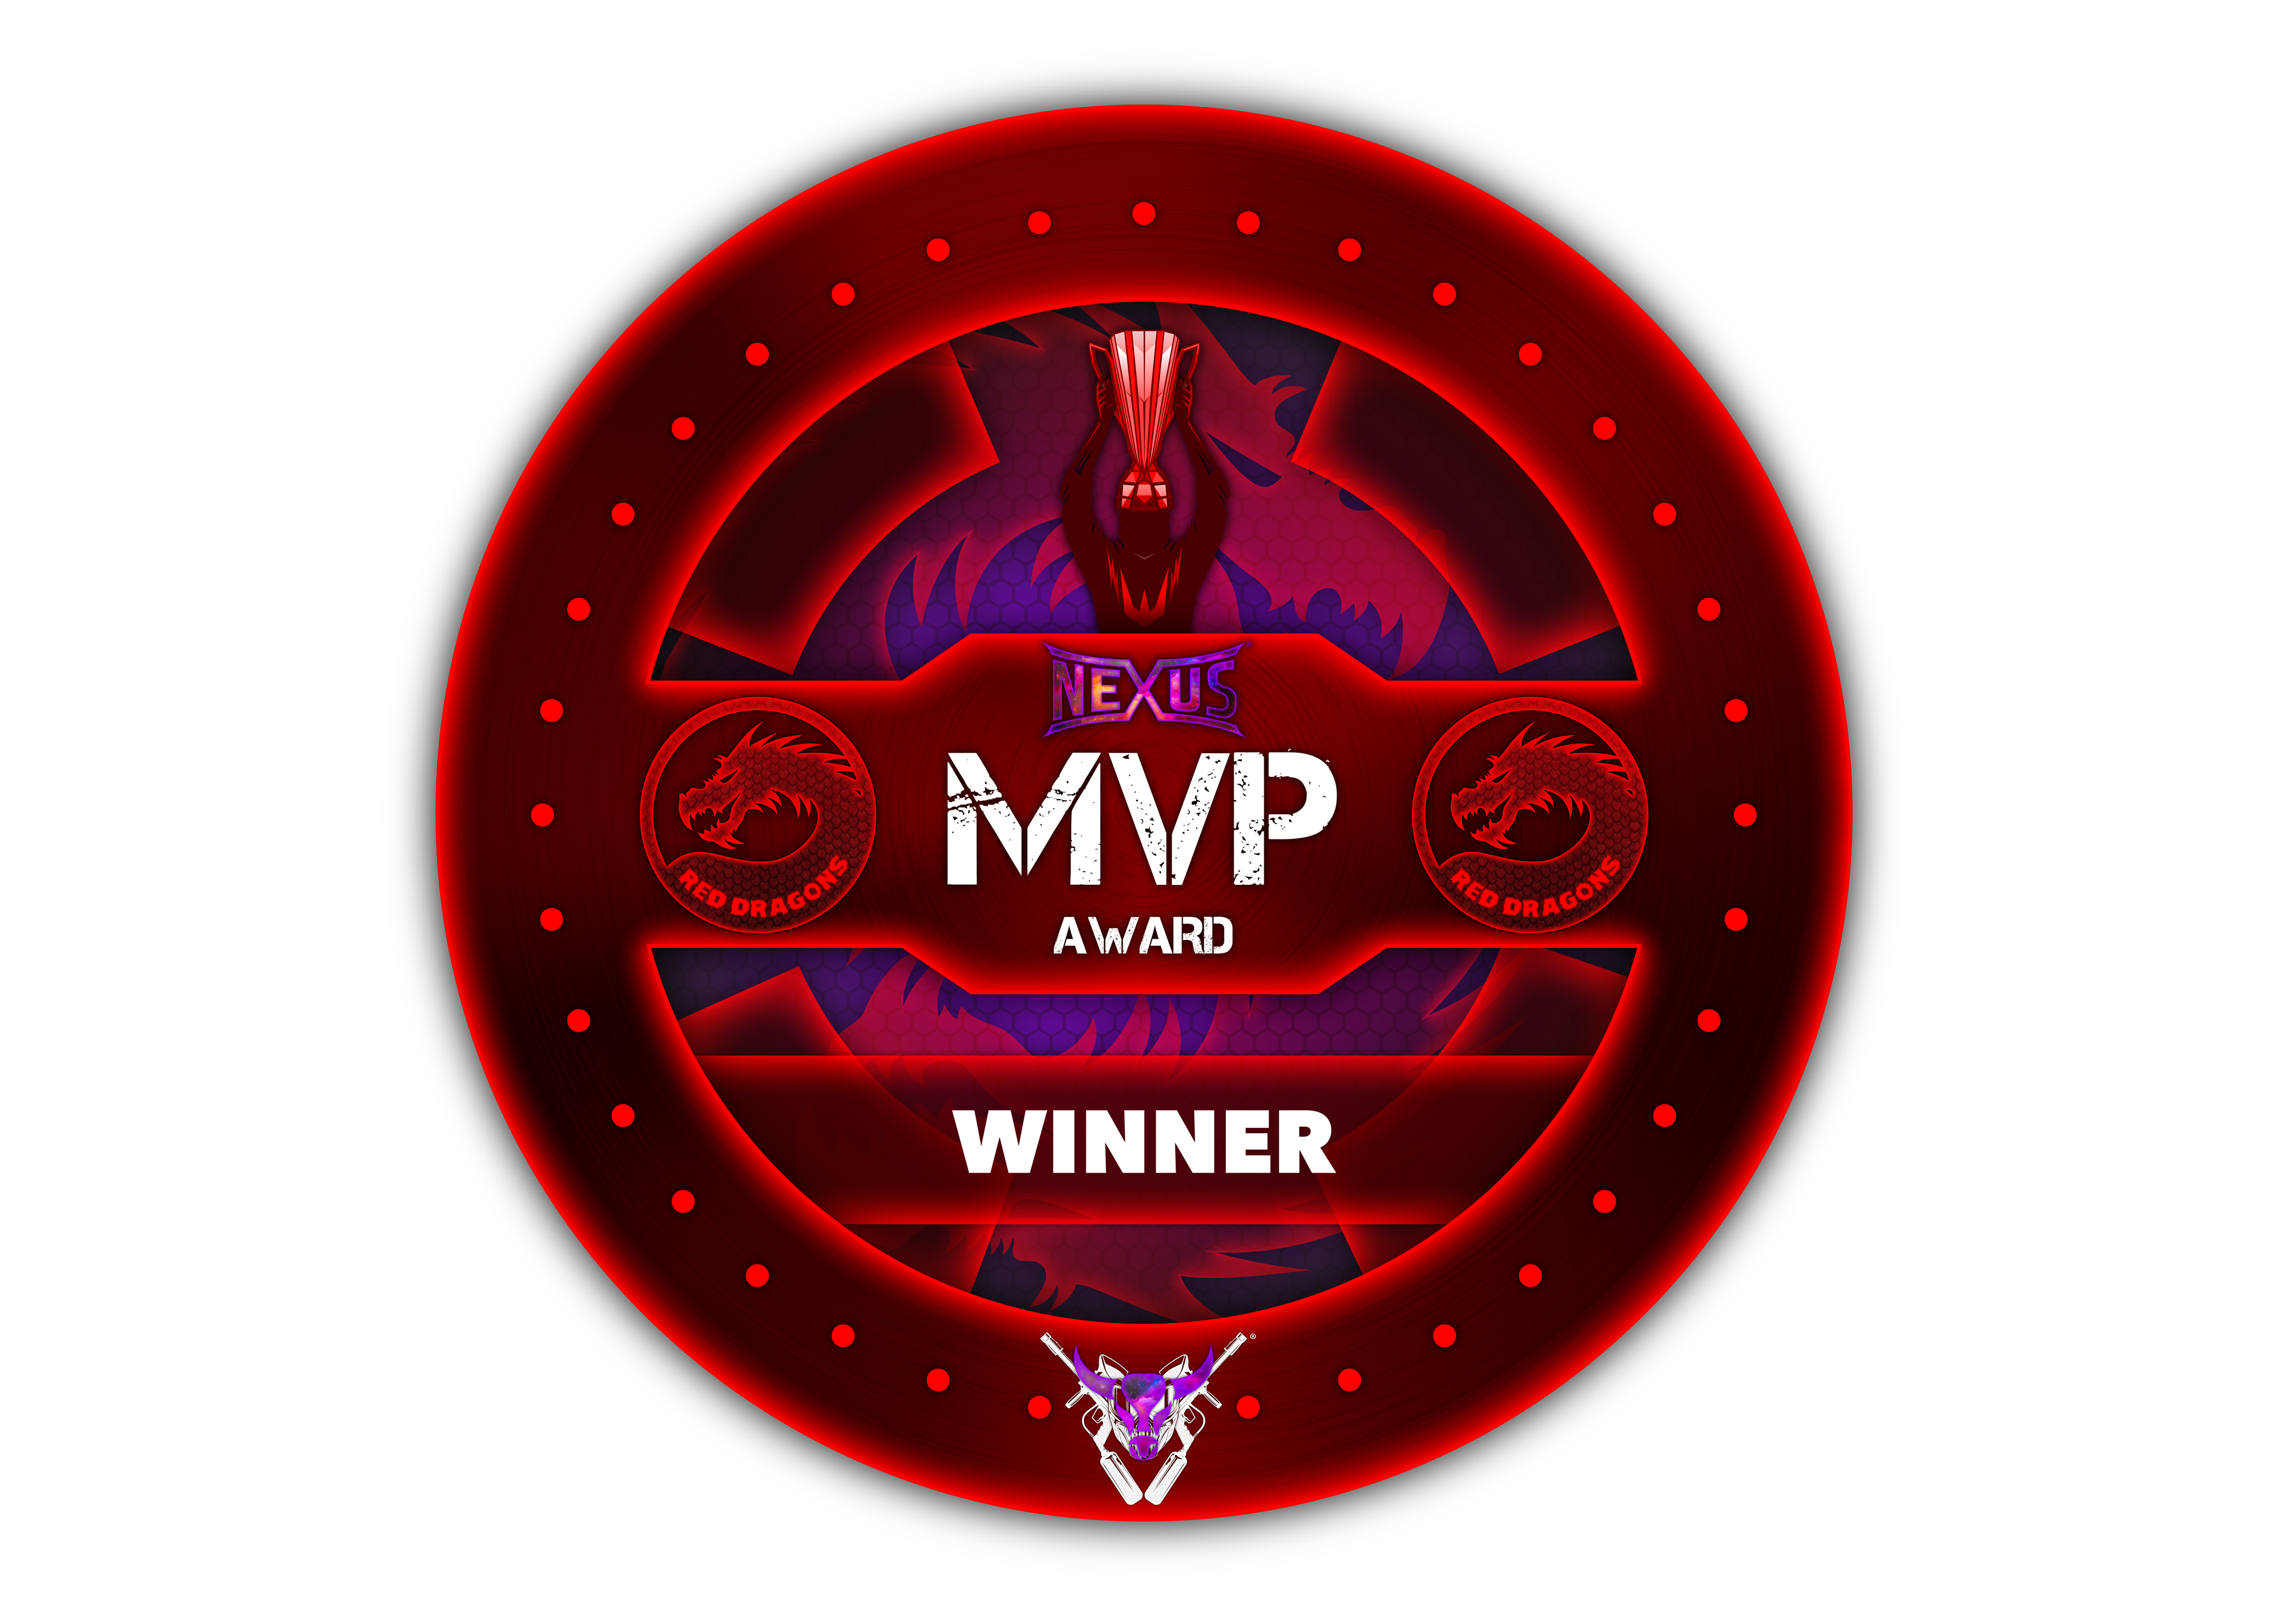 NEXUS Red Dragons MVP Award